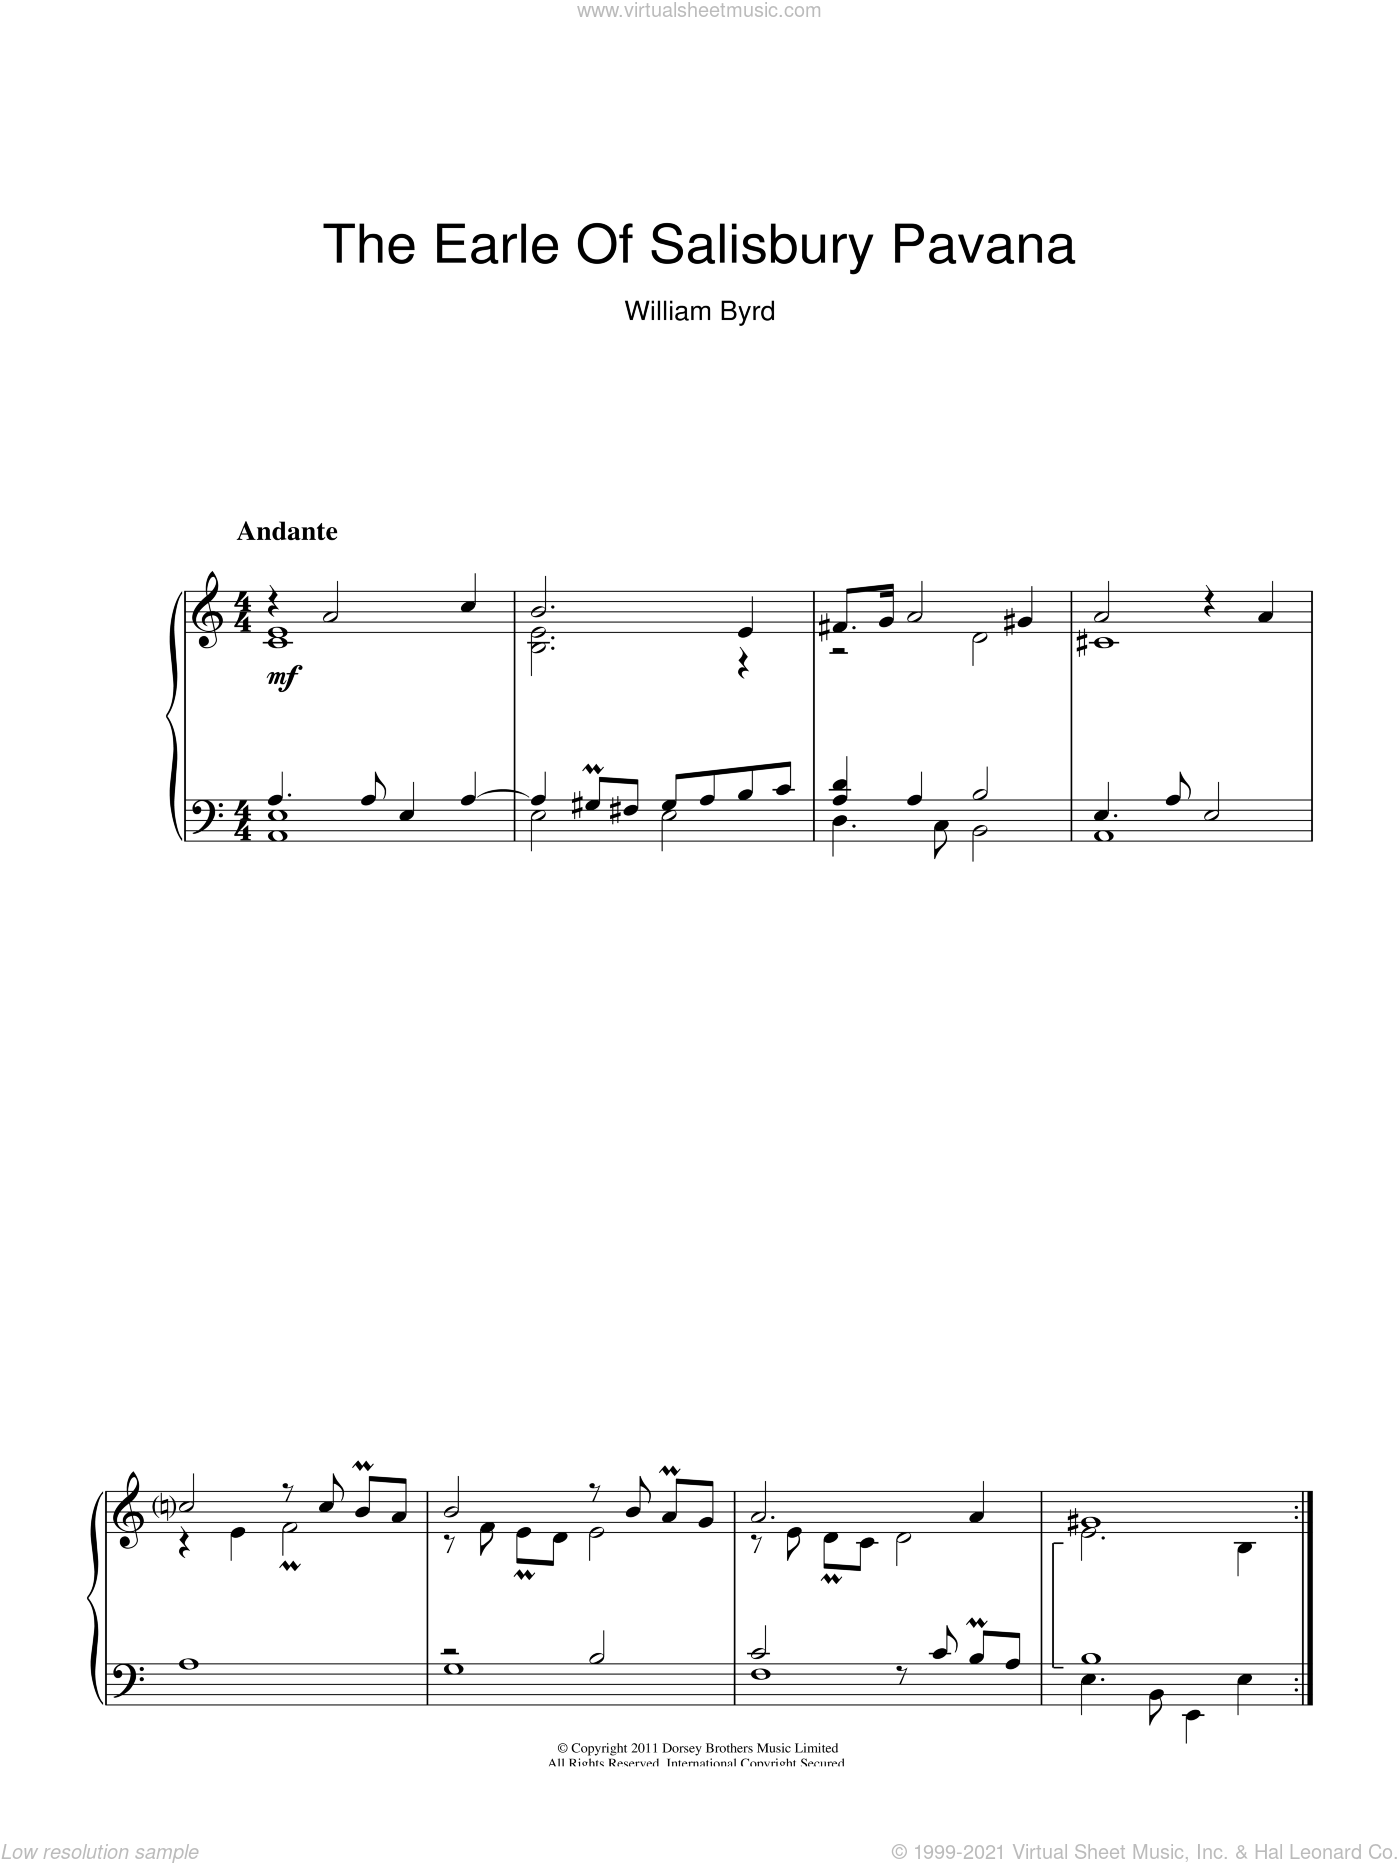 The Earle Of Salisbury Pavana sheet music for piano solo by William Byrd